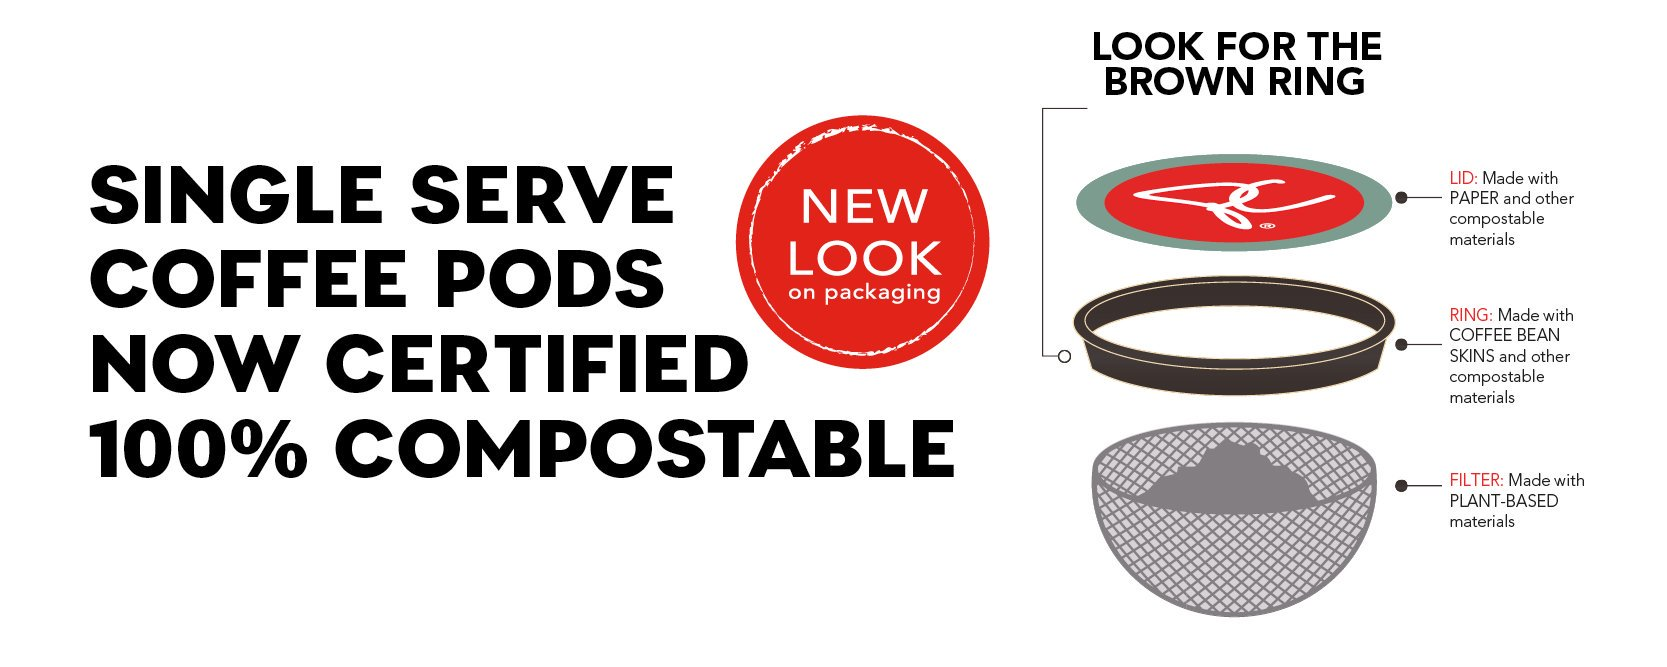 PC Compostable Pods